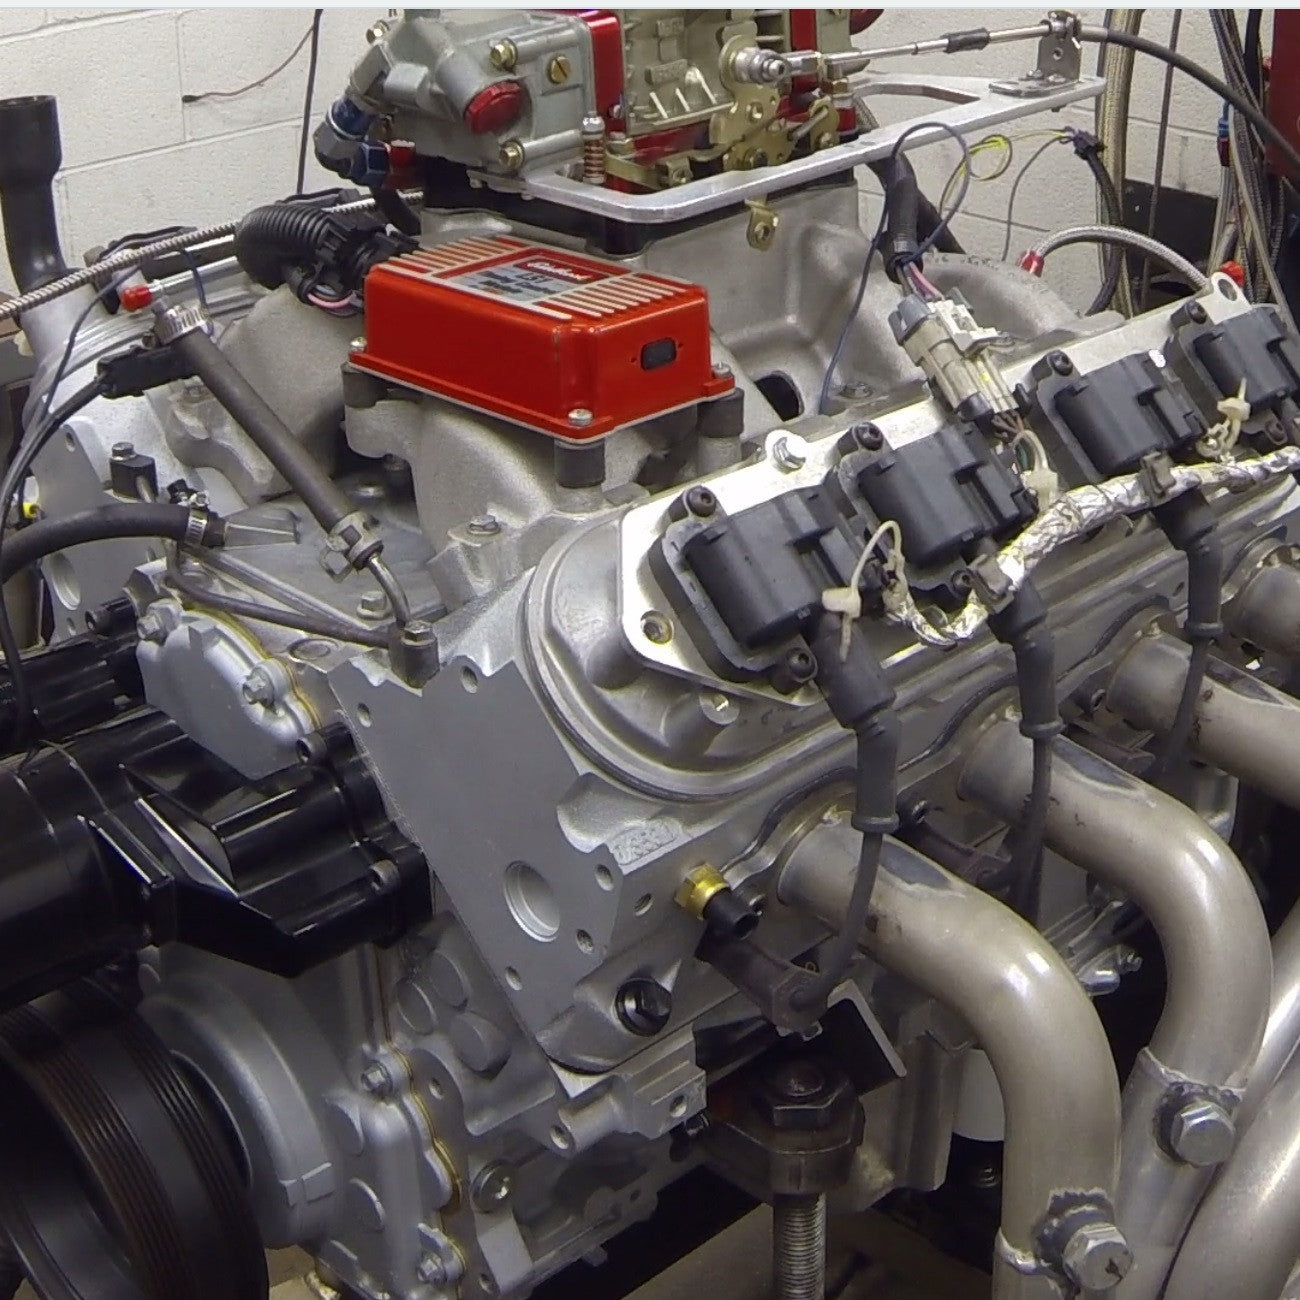 Ls1 With Heads And Cam Hp: LS1 Long Block, Dyno'd At 480 Hp With Carb